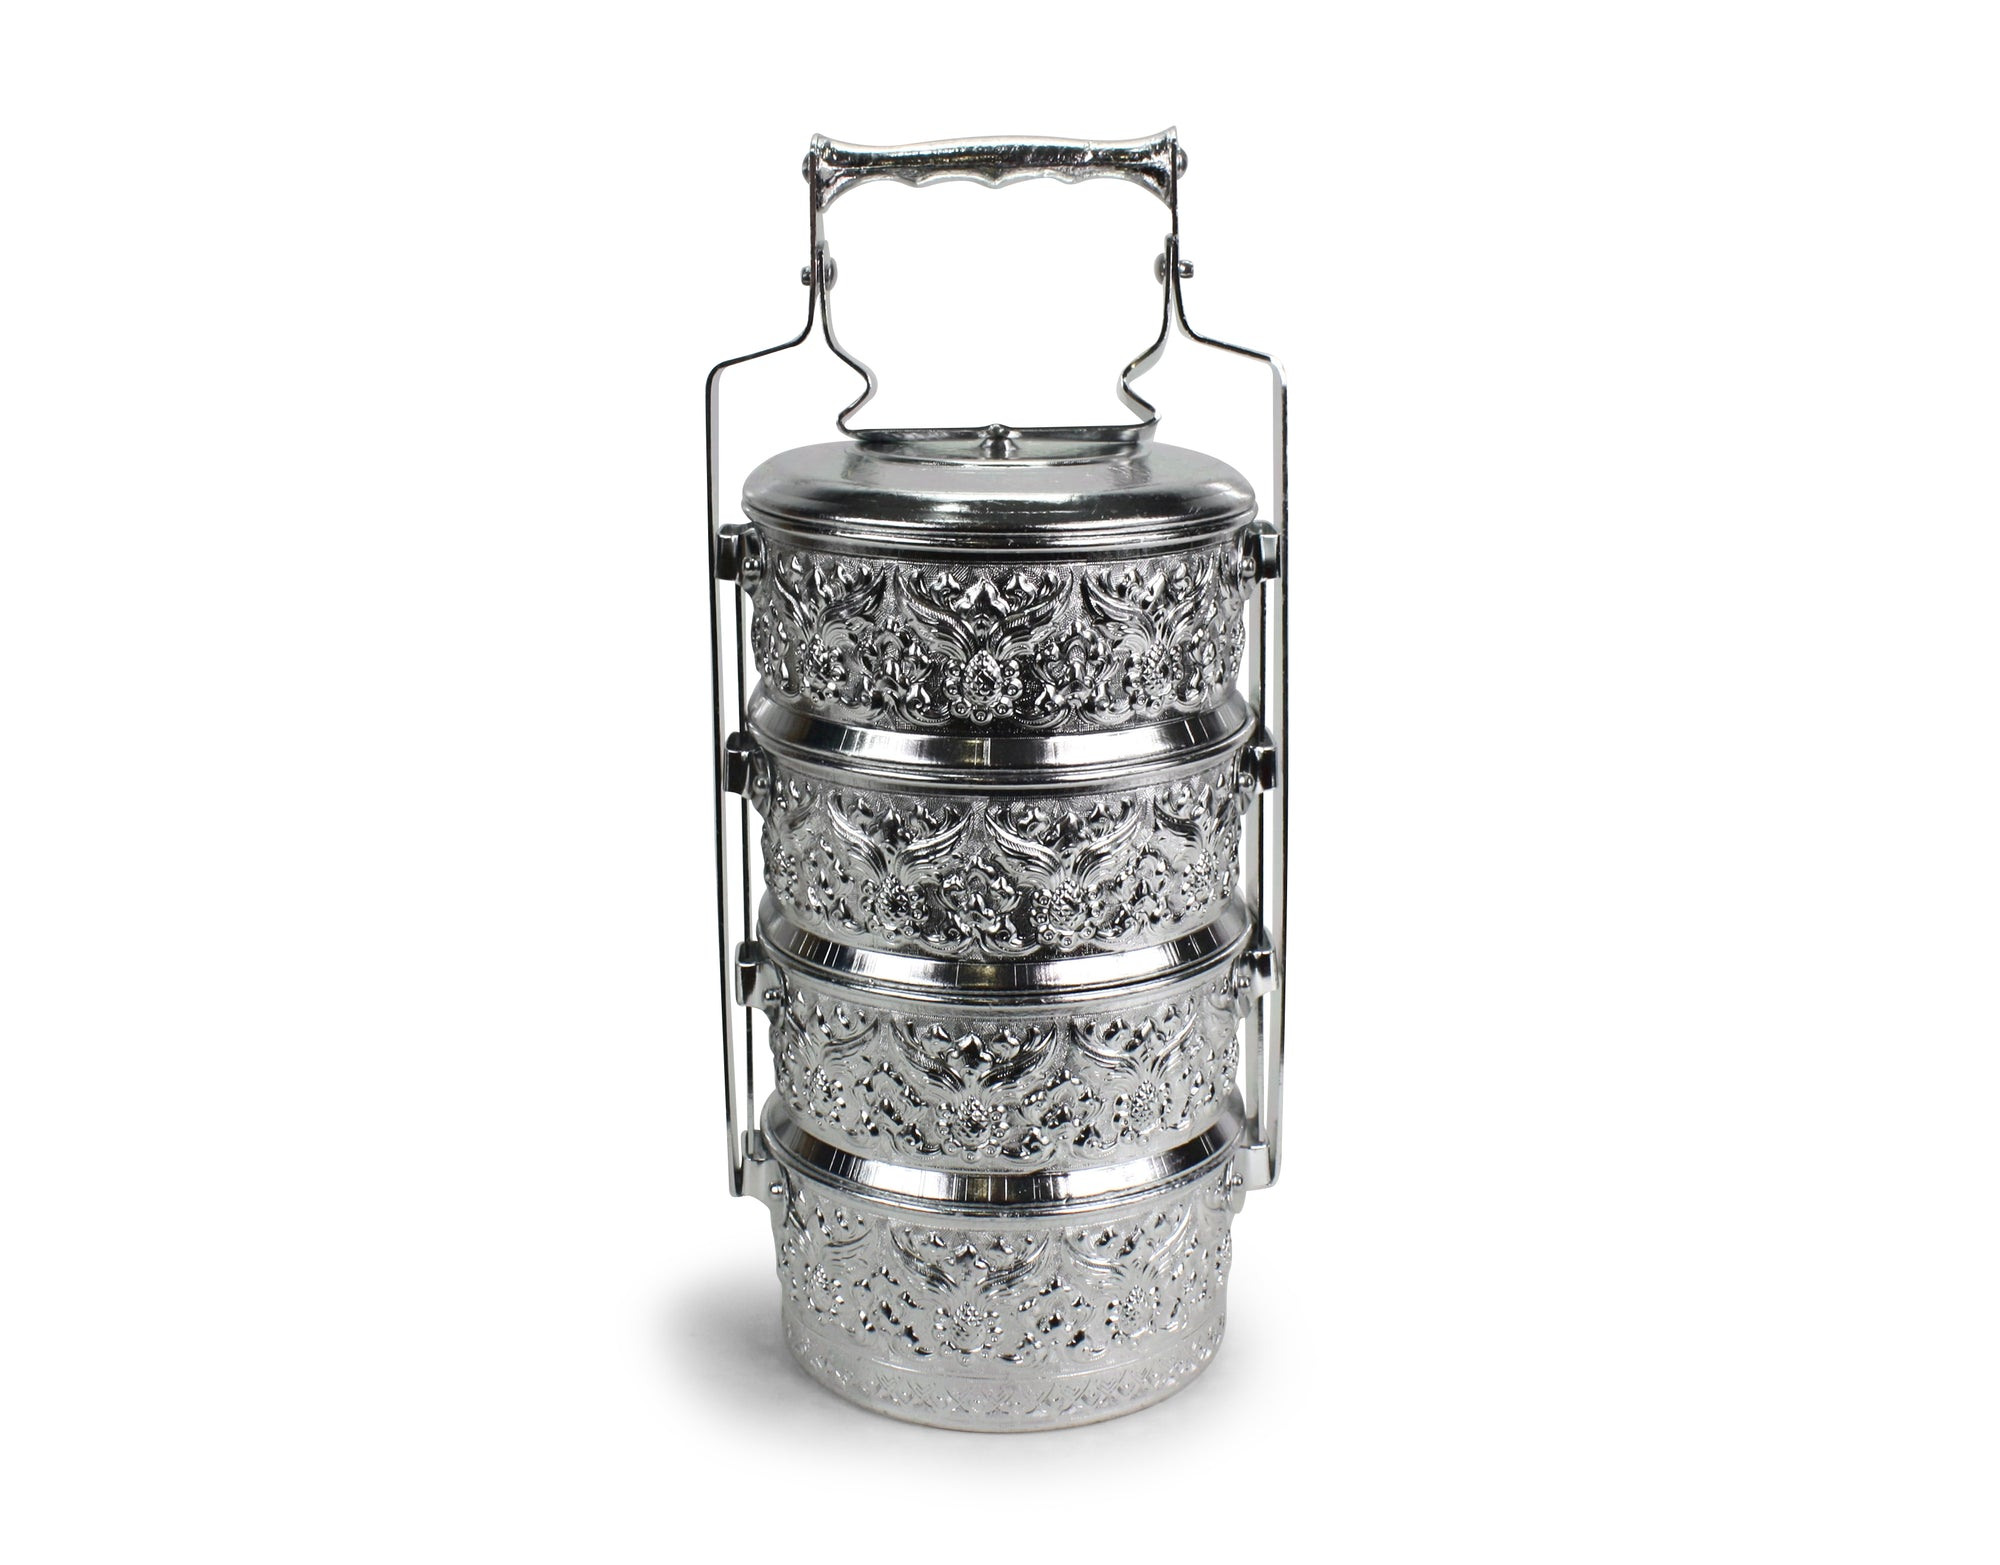 Traditional Thai Metal Food Carrier, 4 bowls, 14cm x 4. Tiffin box. Aluminium. - farangshop-co